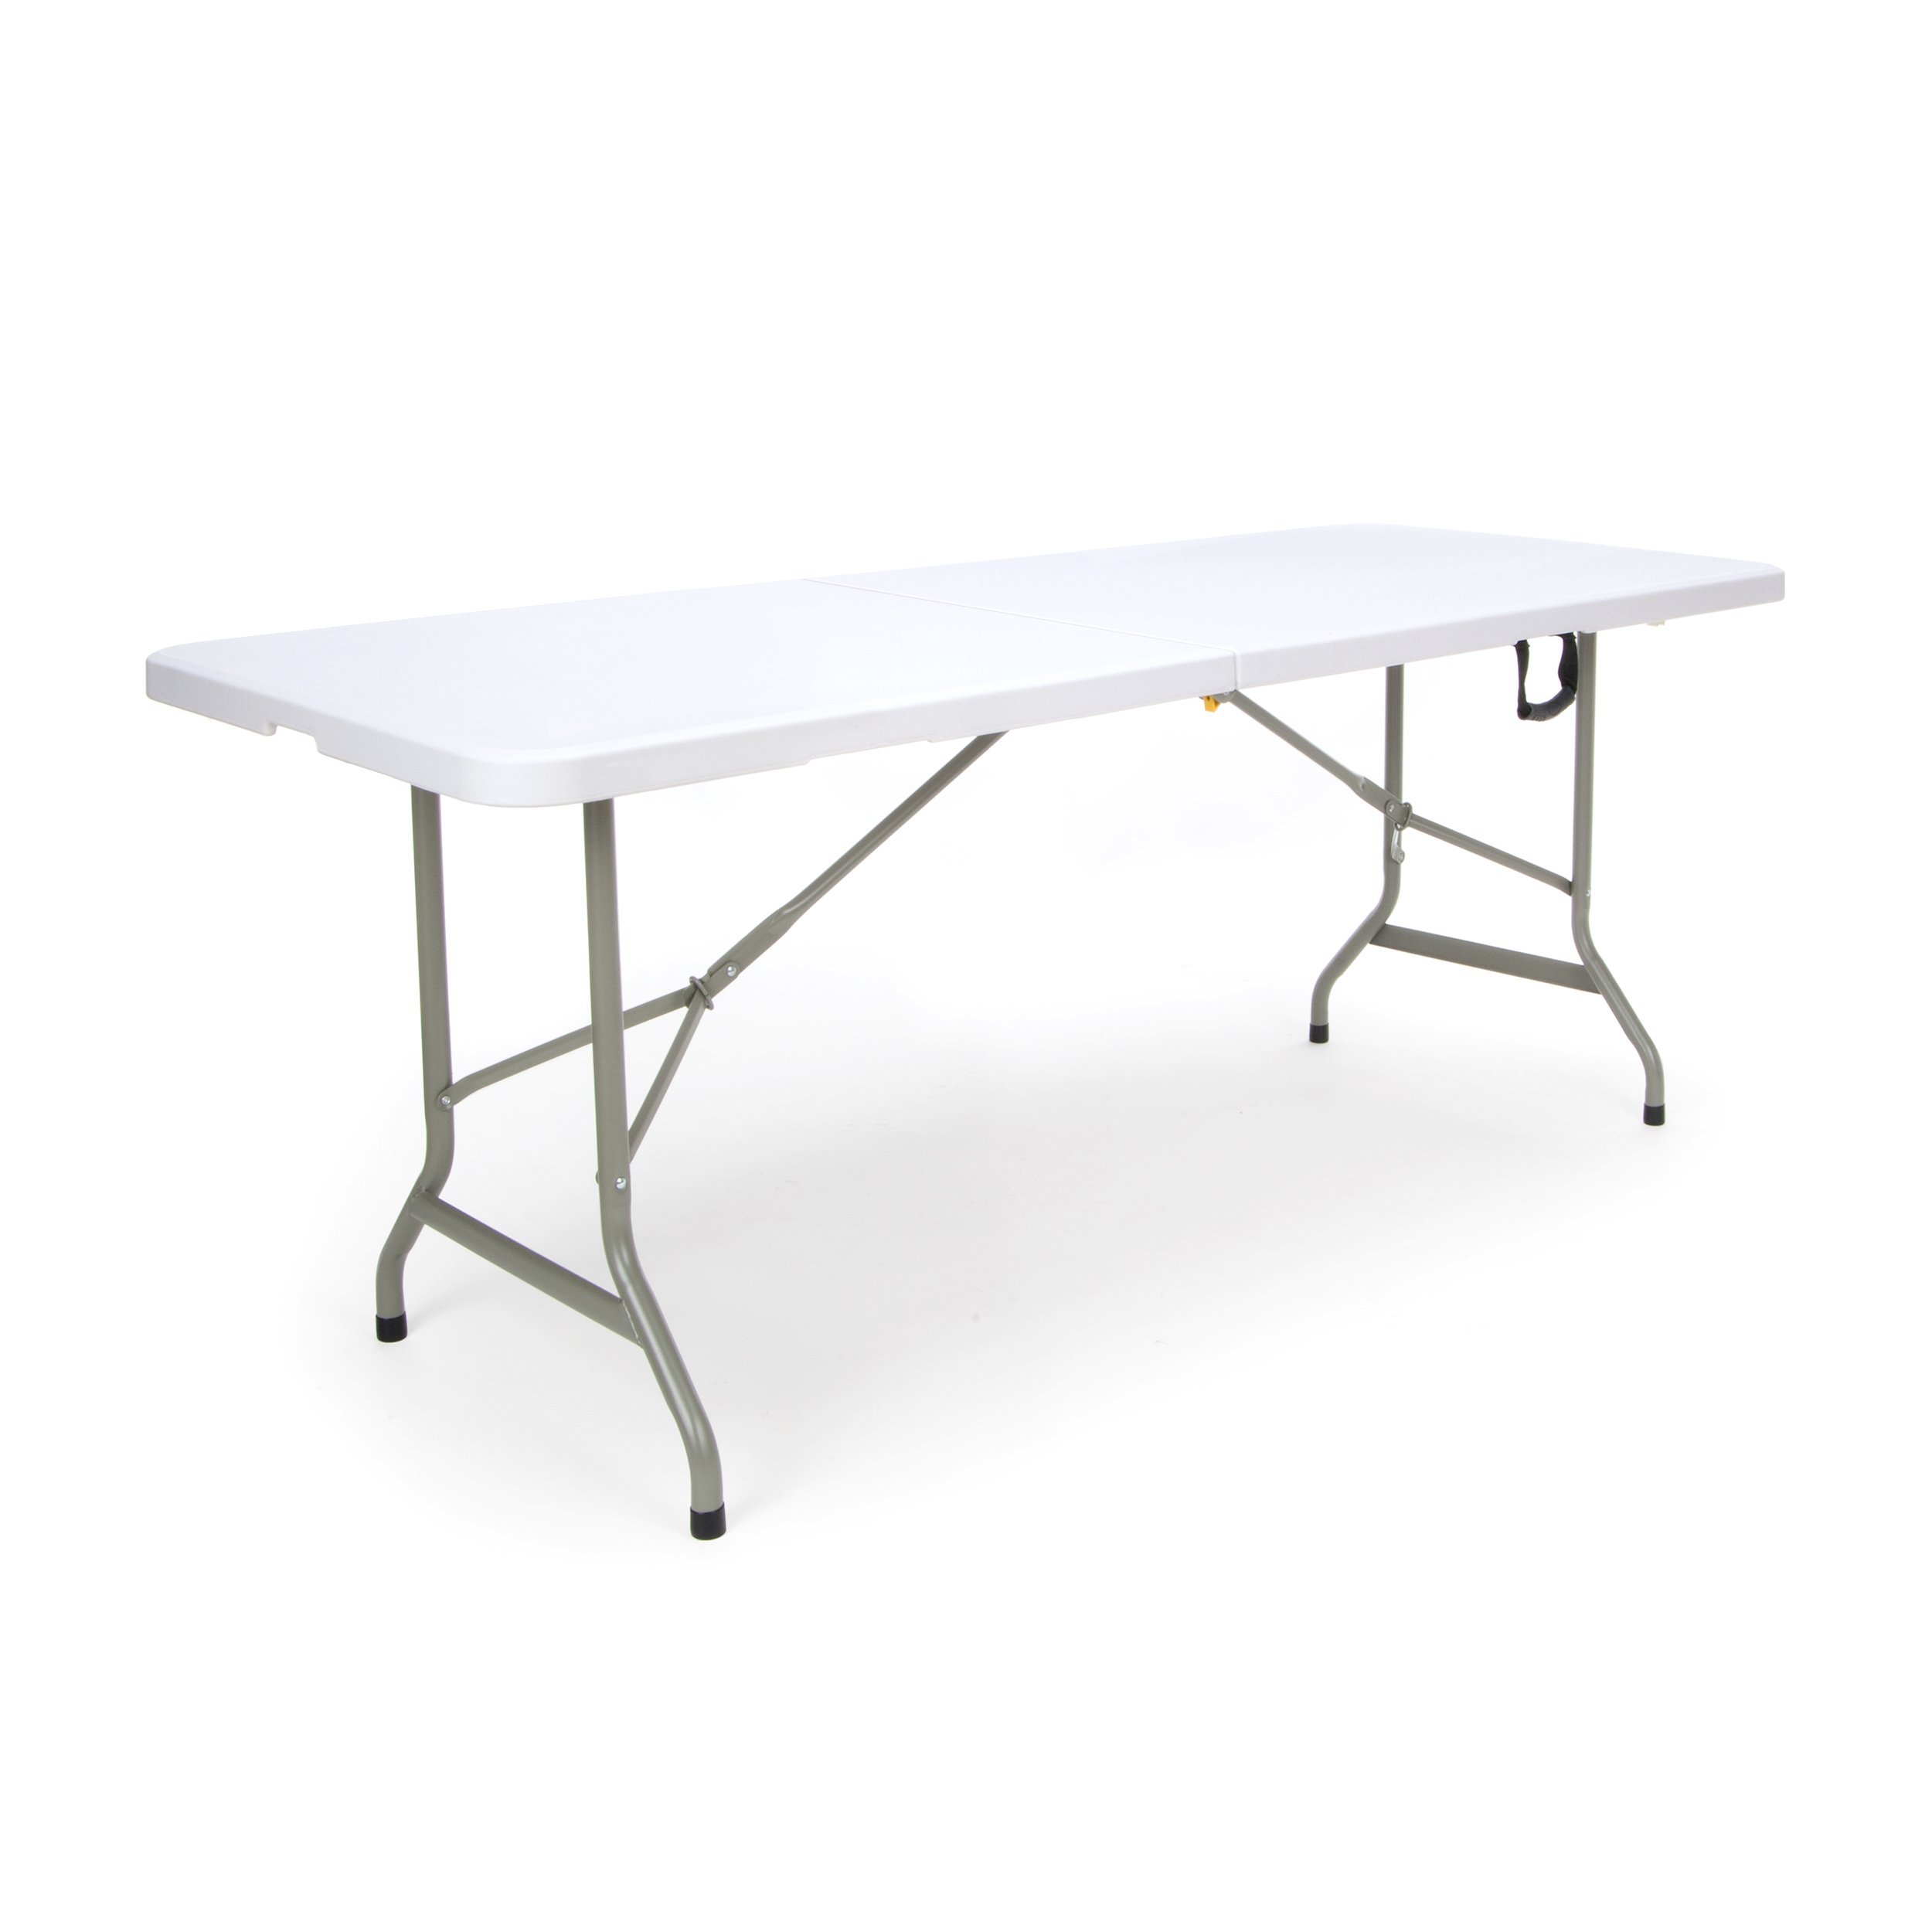 Essentials Center Folding Multipurpose Utility Table - Sturdy Card/Conference/Office/Craft Plastic Table, 30'' x 72'', White